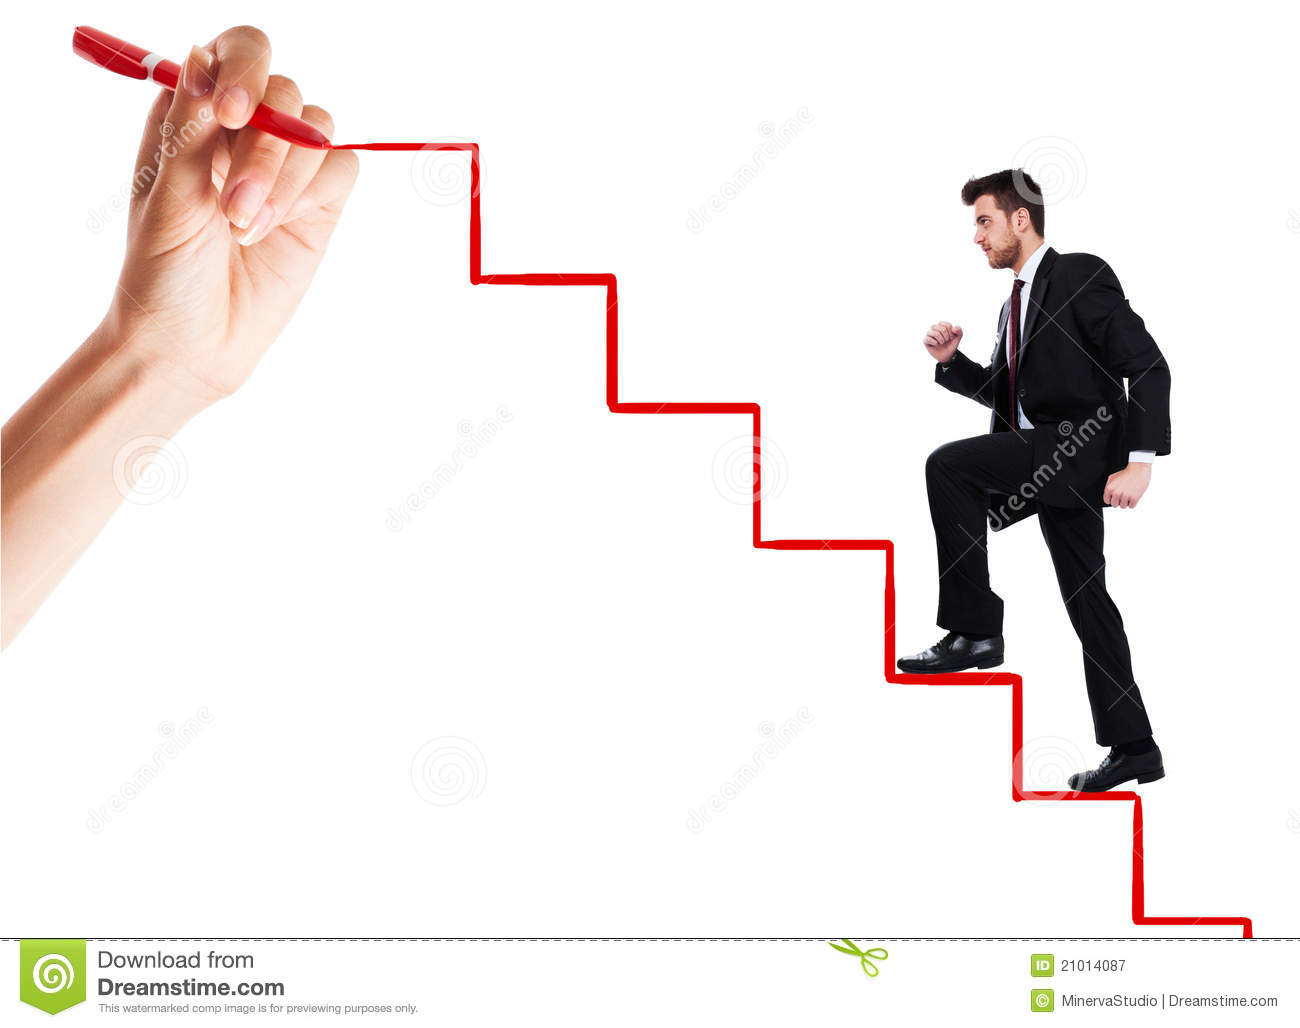 Person Climbing the Ladder of Success